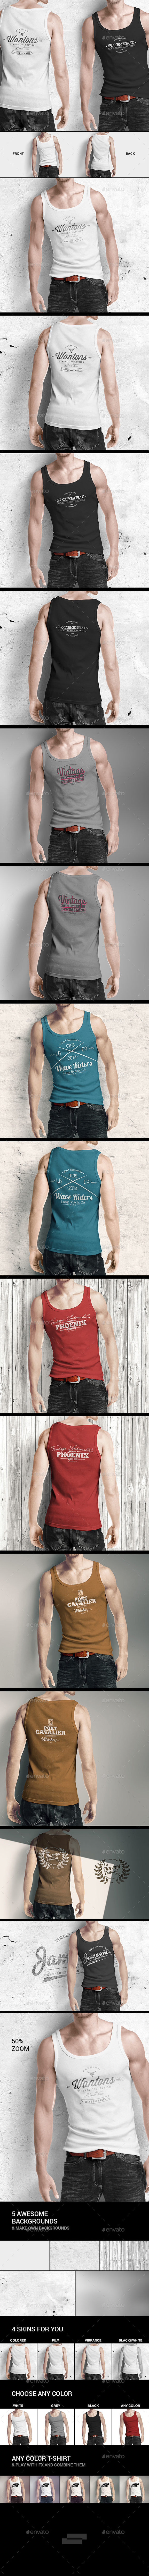 GraphicRiver Man Tank Shirt Mock-up 8894495